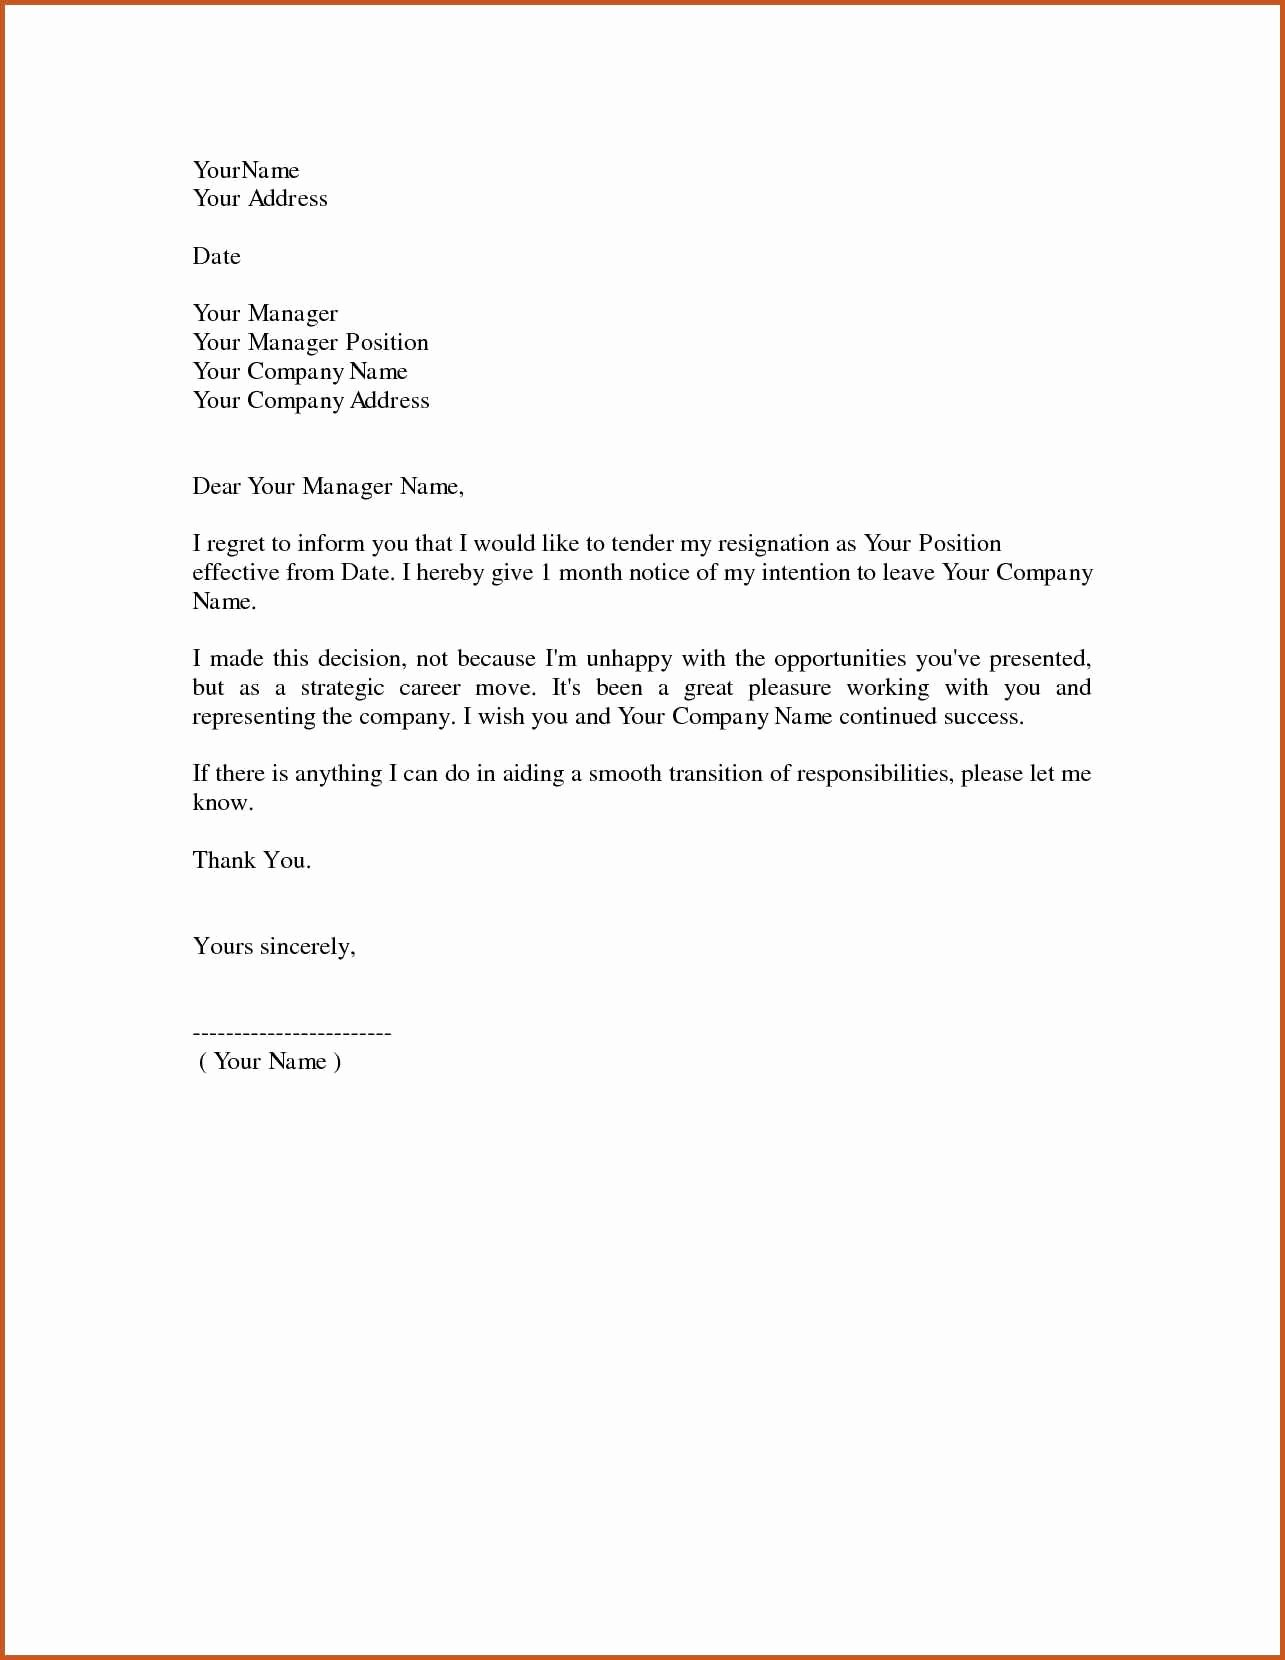 Retirement Letter to Employer Beautiful Retirement Letter to Employer Template Samples